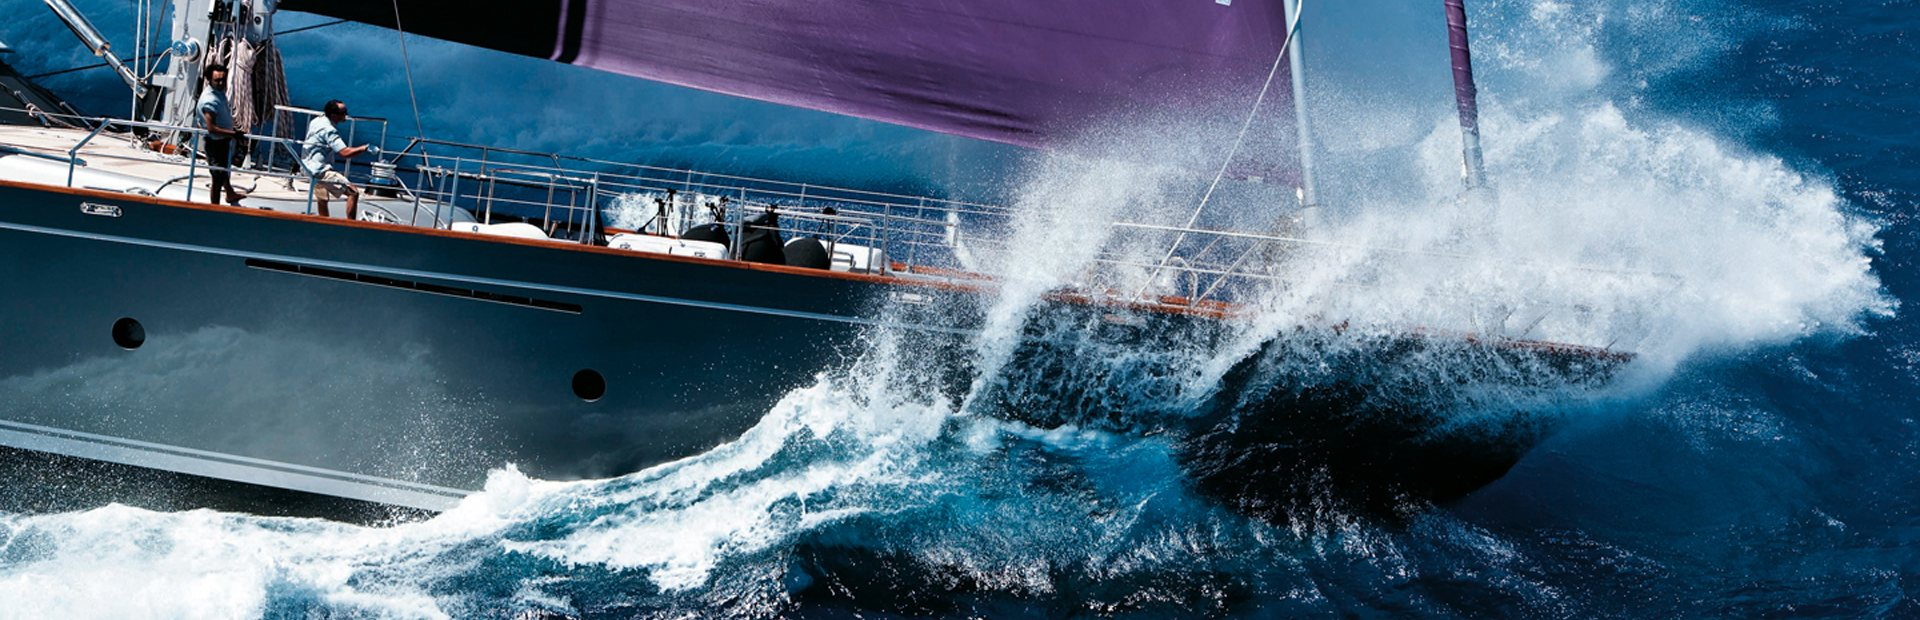 Wave splashing over the bow of yacht in Perini Navi yacht on charter for regatta